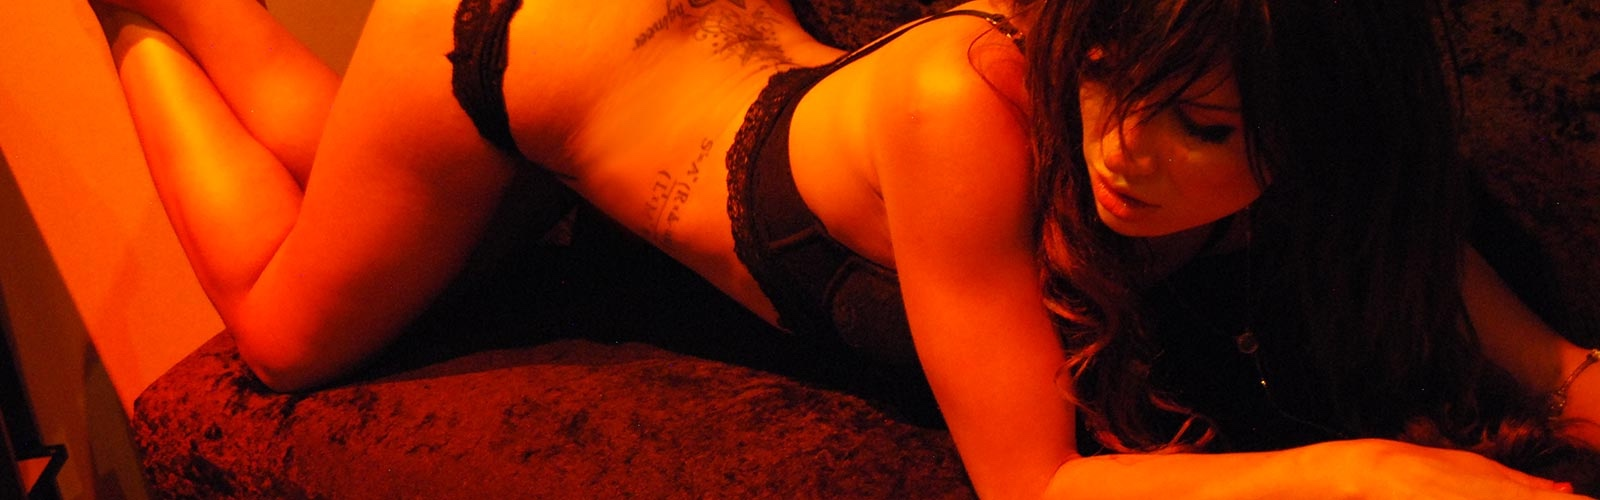 kenilworth Escort massage